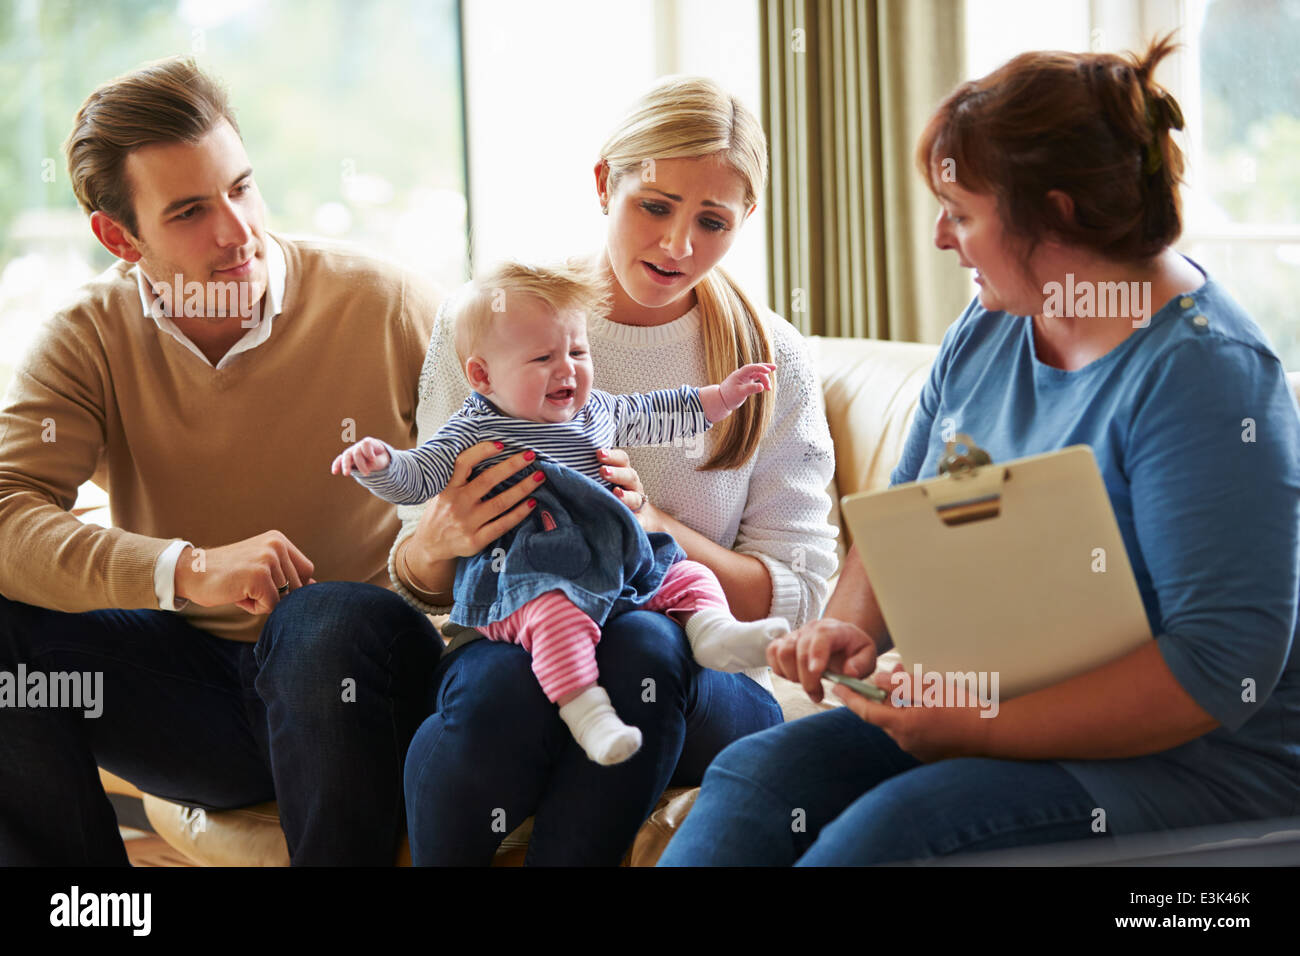 Social Worker Visiting Family With Young Baby - Stock Image